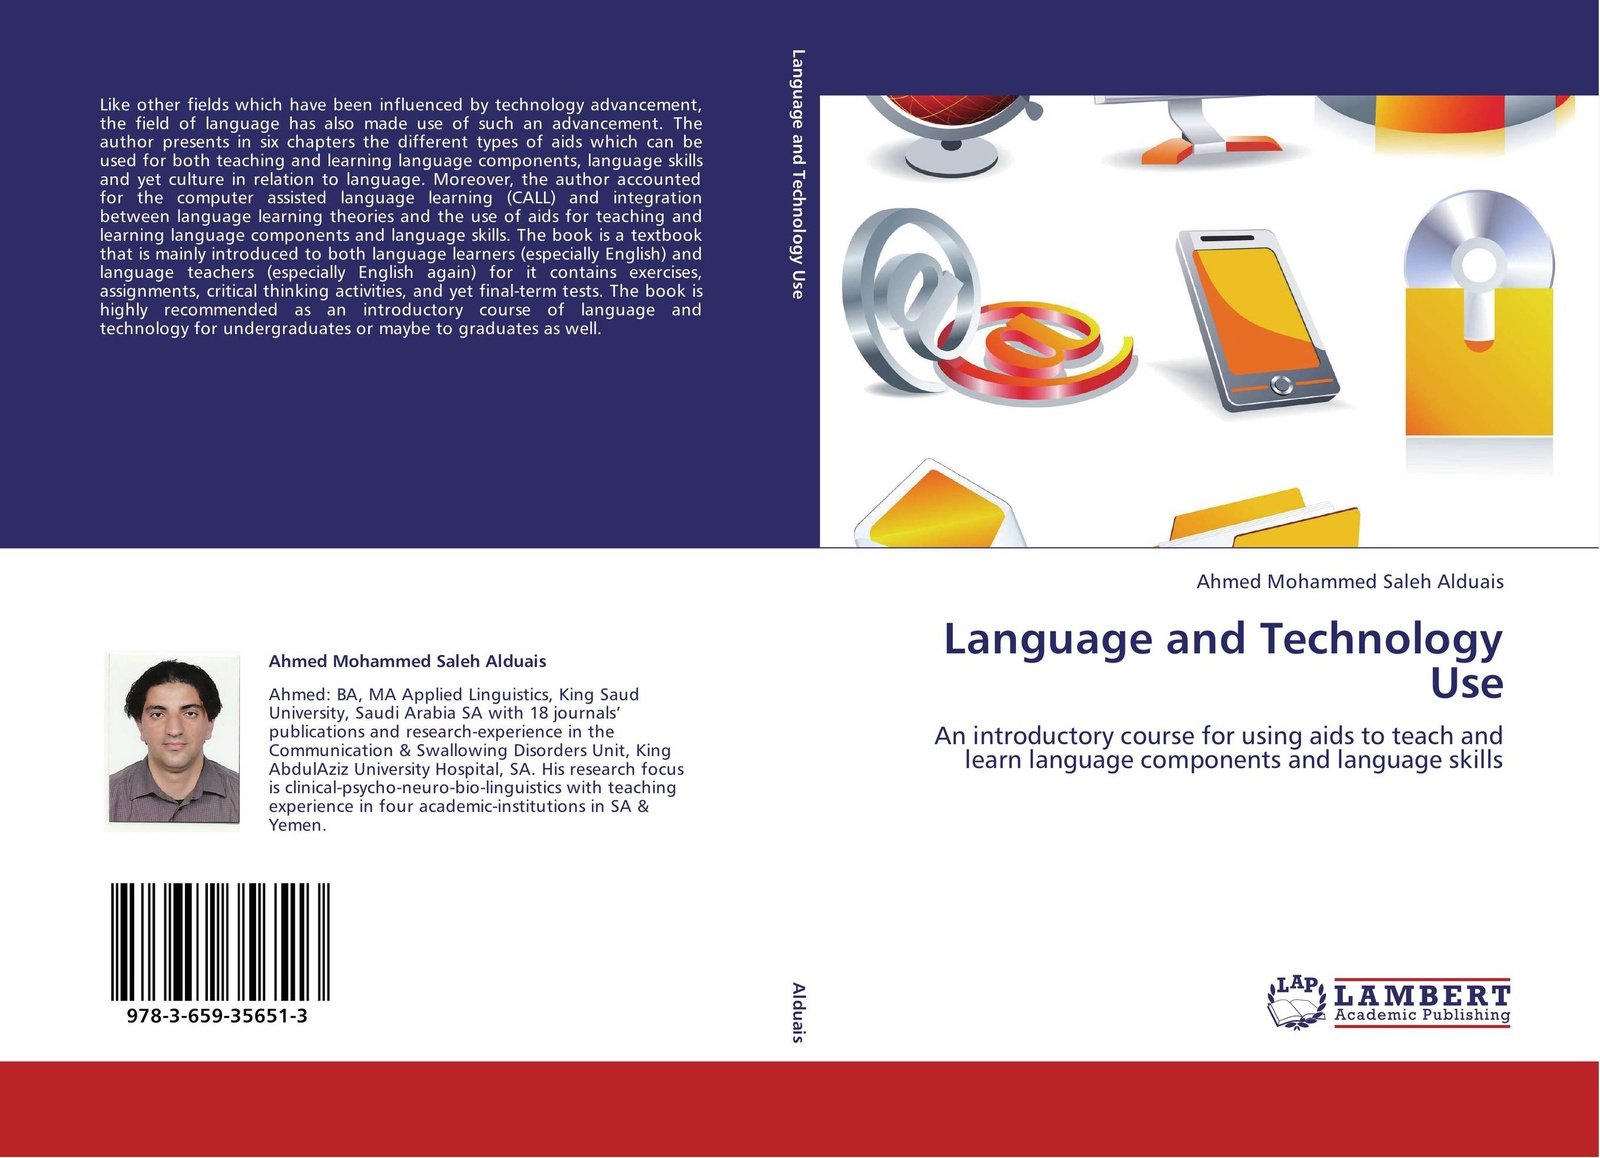 Ahmed Mohammed Saleh Alduais Language and Technology Use ambiguity in language use